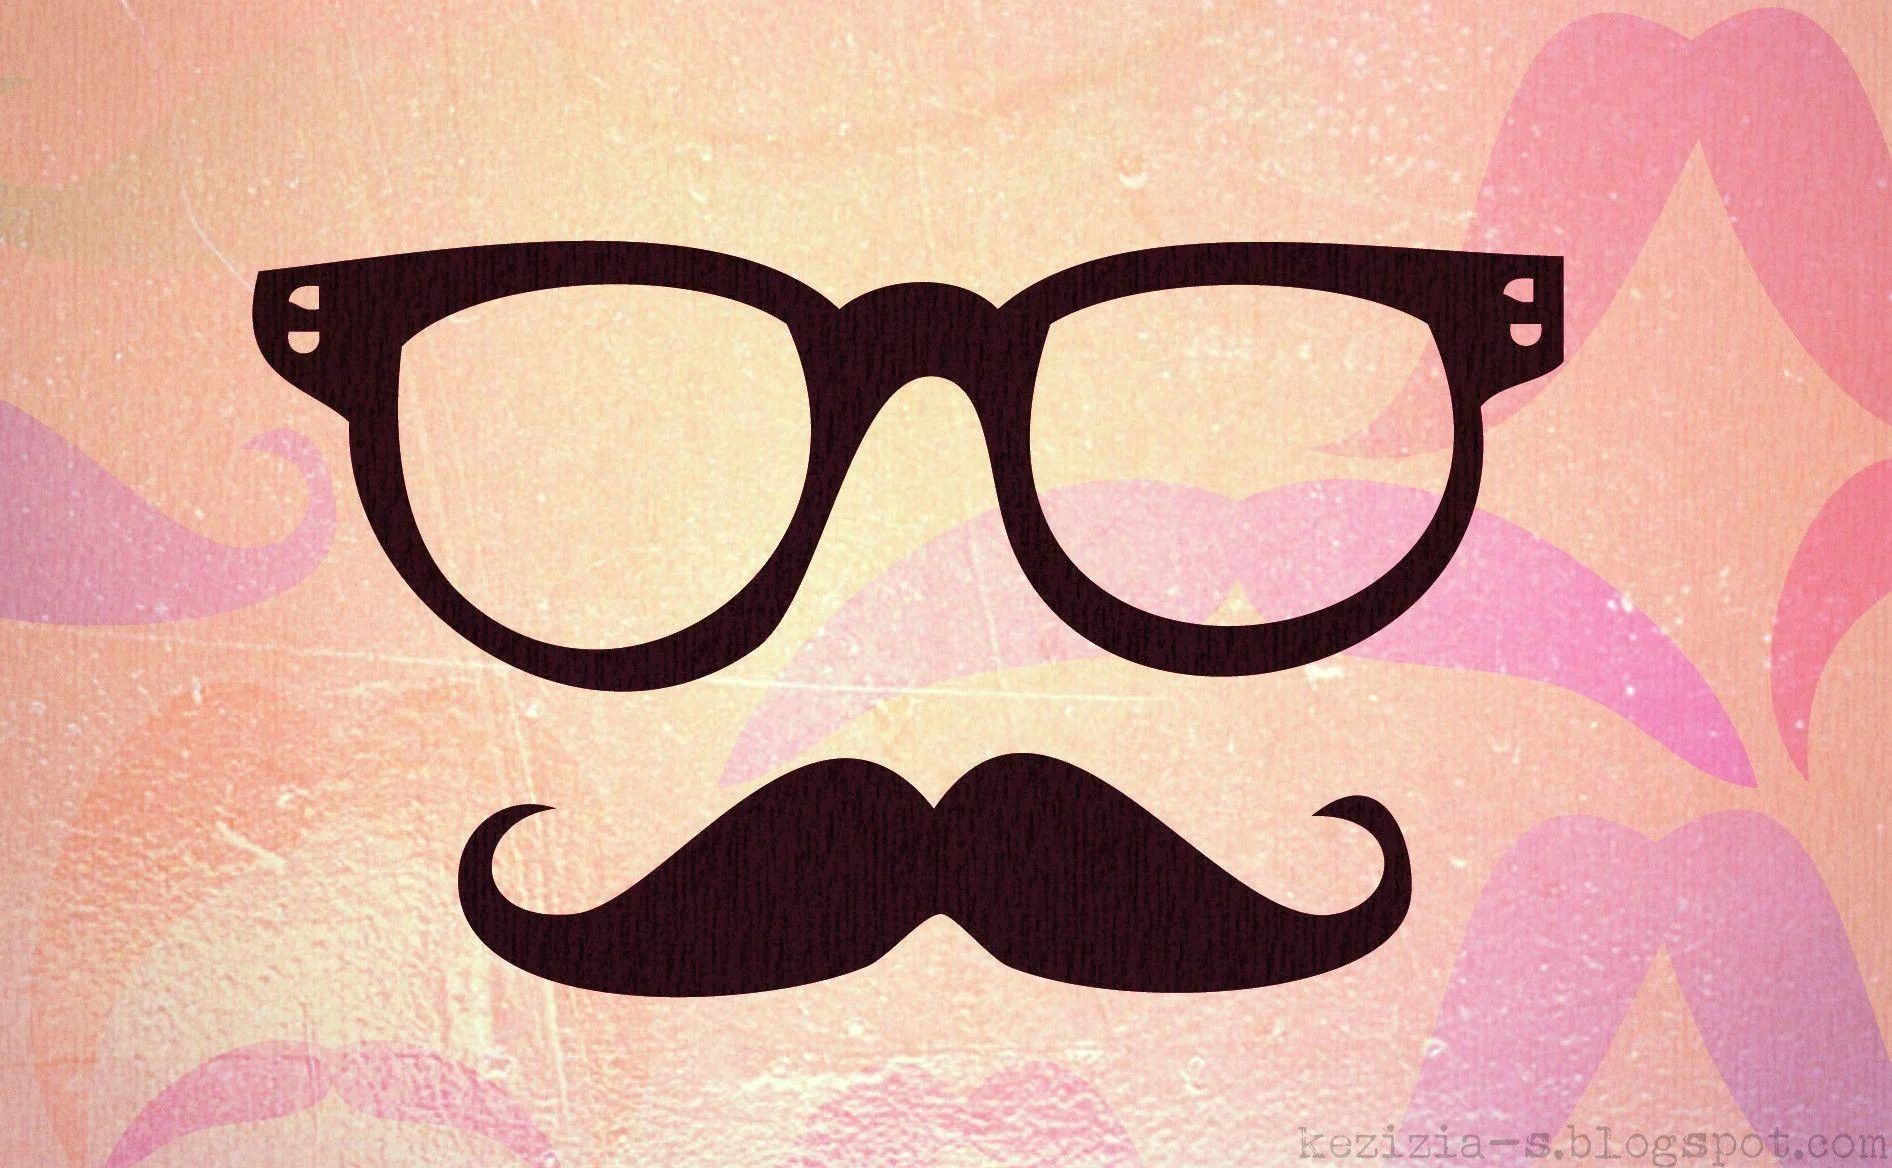 Funny cute wallpapers tumblr mustache high definition wallpaper